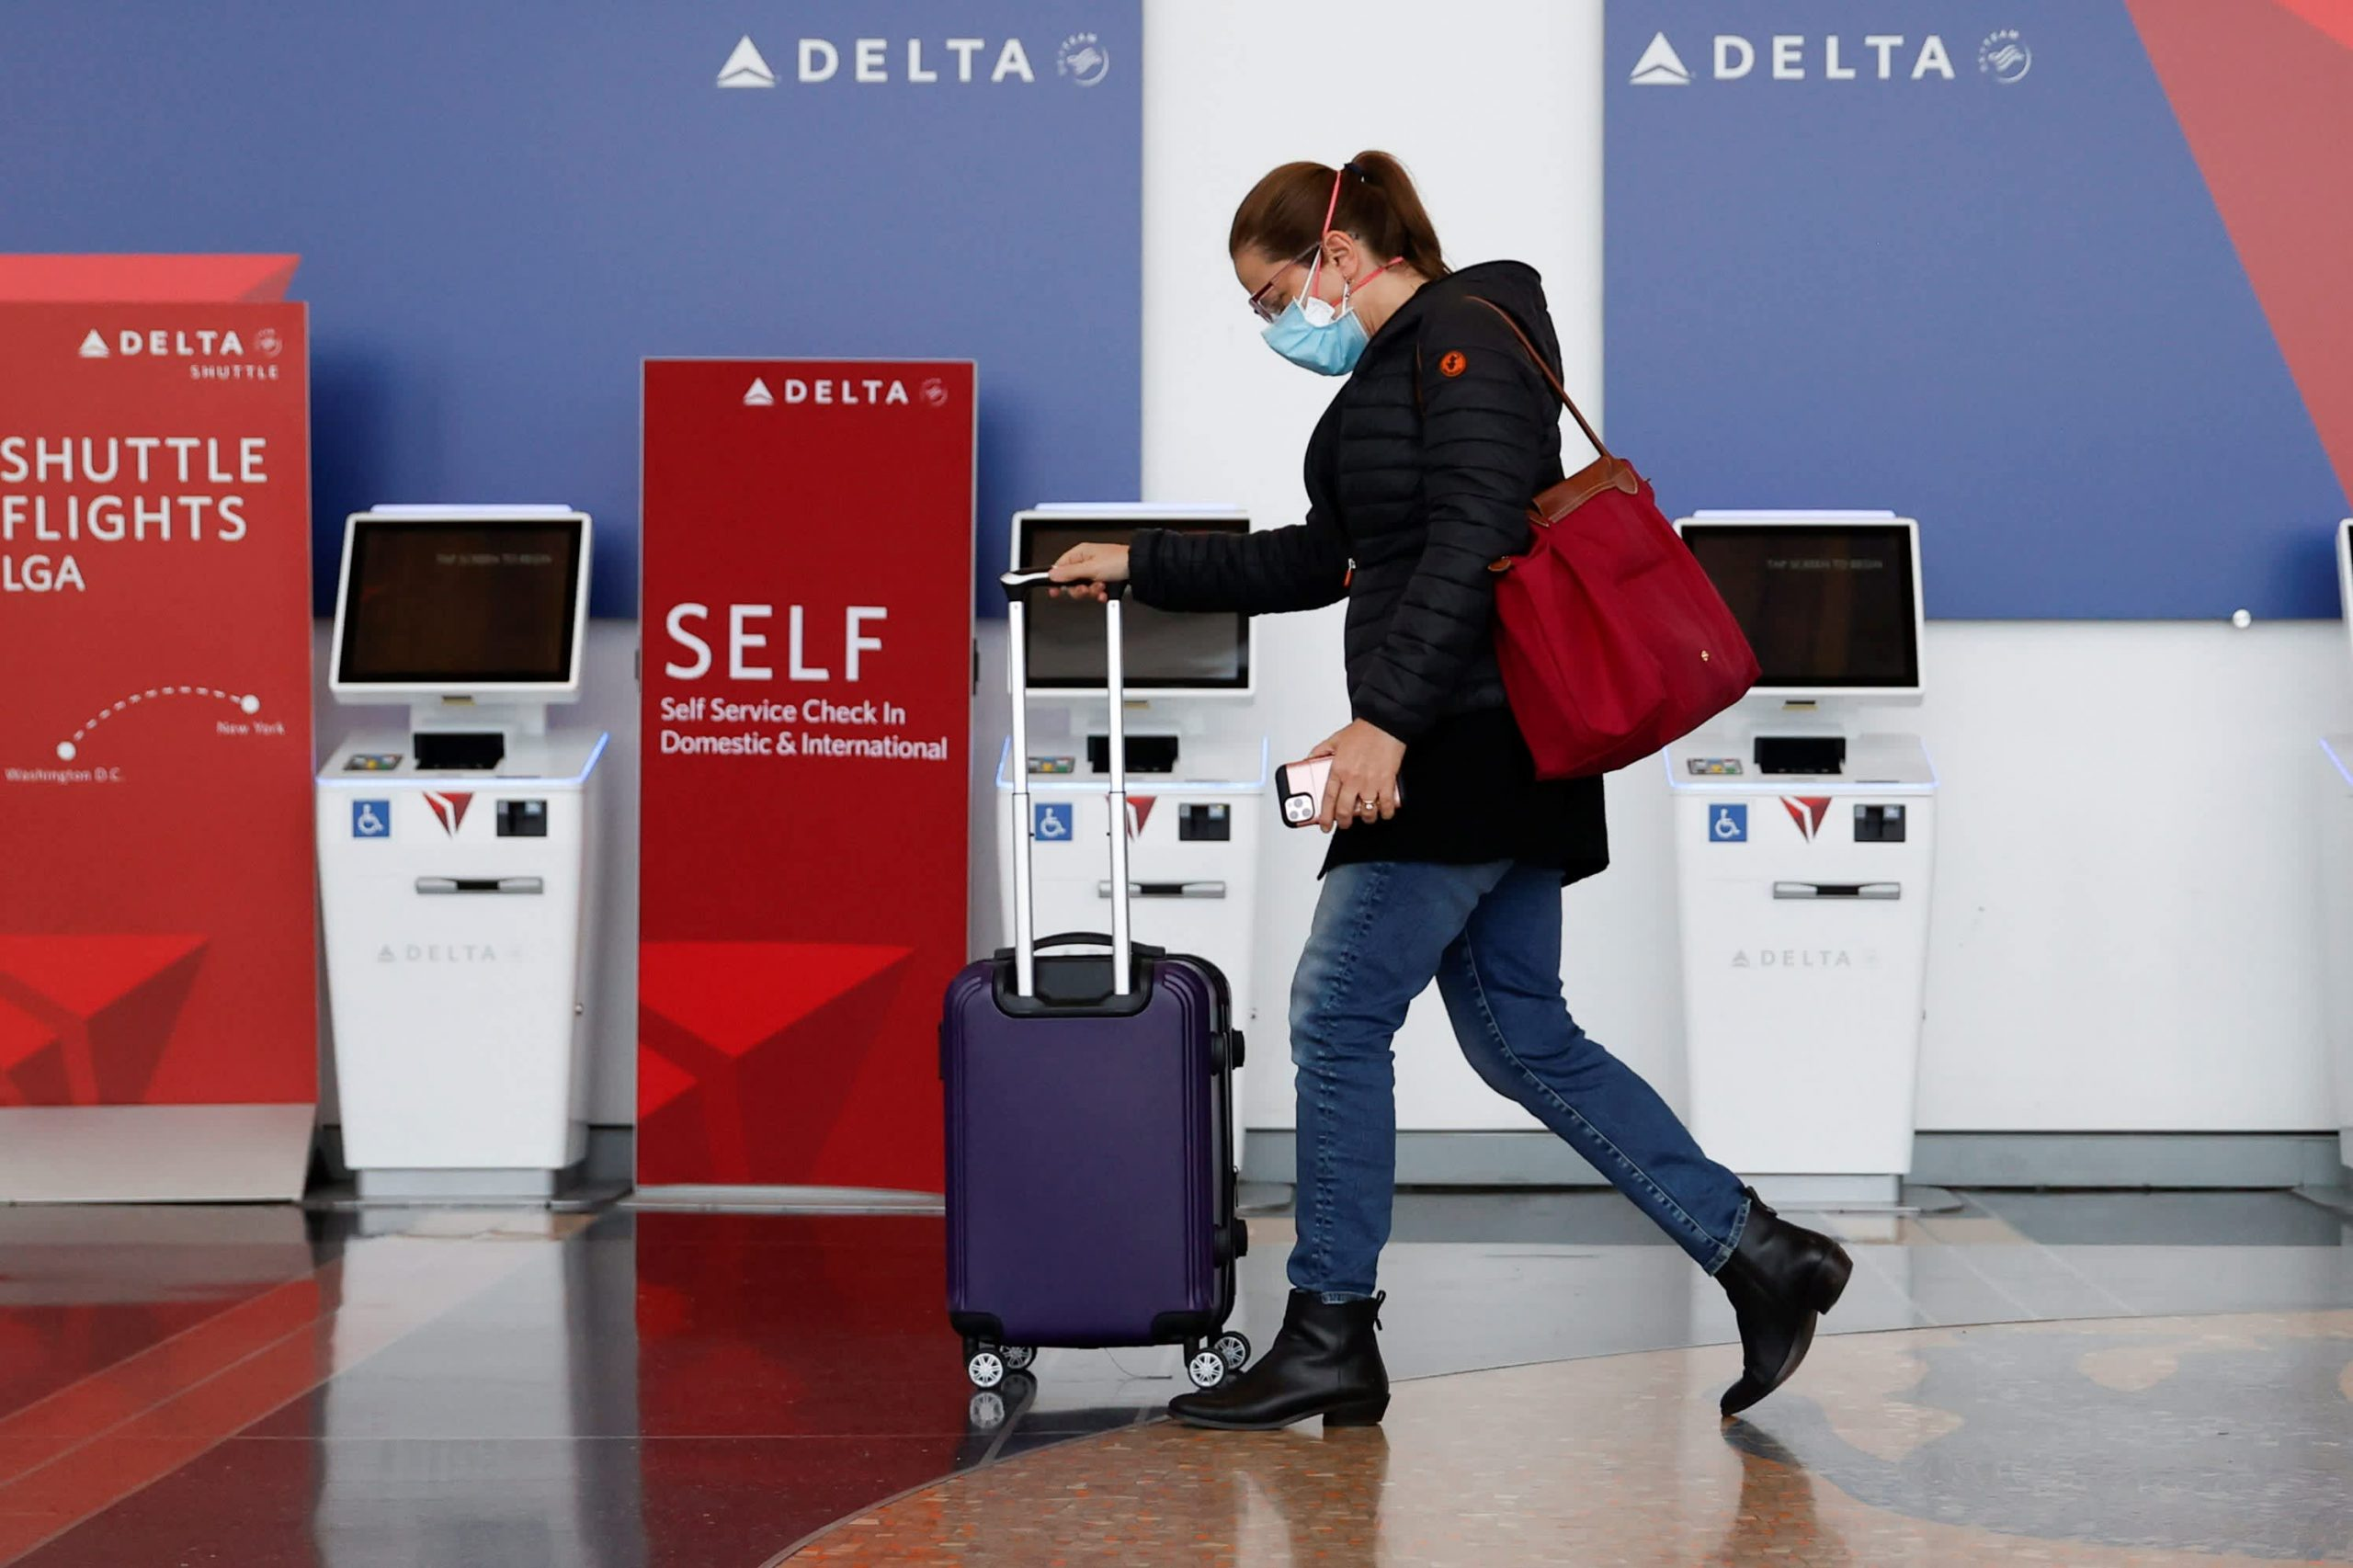 Johnson & Johnson, Delta Air Lines and more